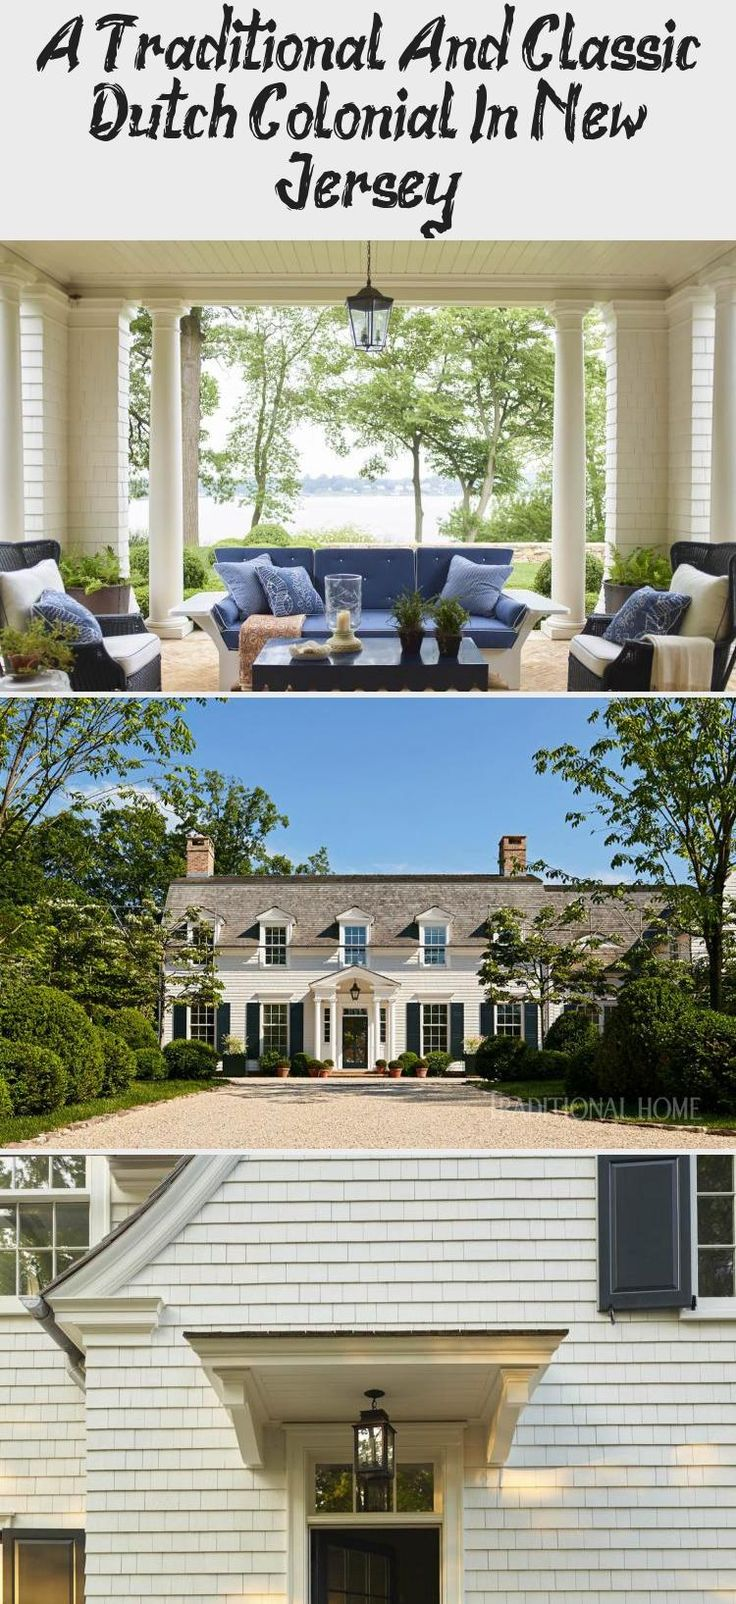 A TRADITIONAL AND CLASSIC DUTCH COLONIAL IN NEW JERSEY